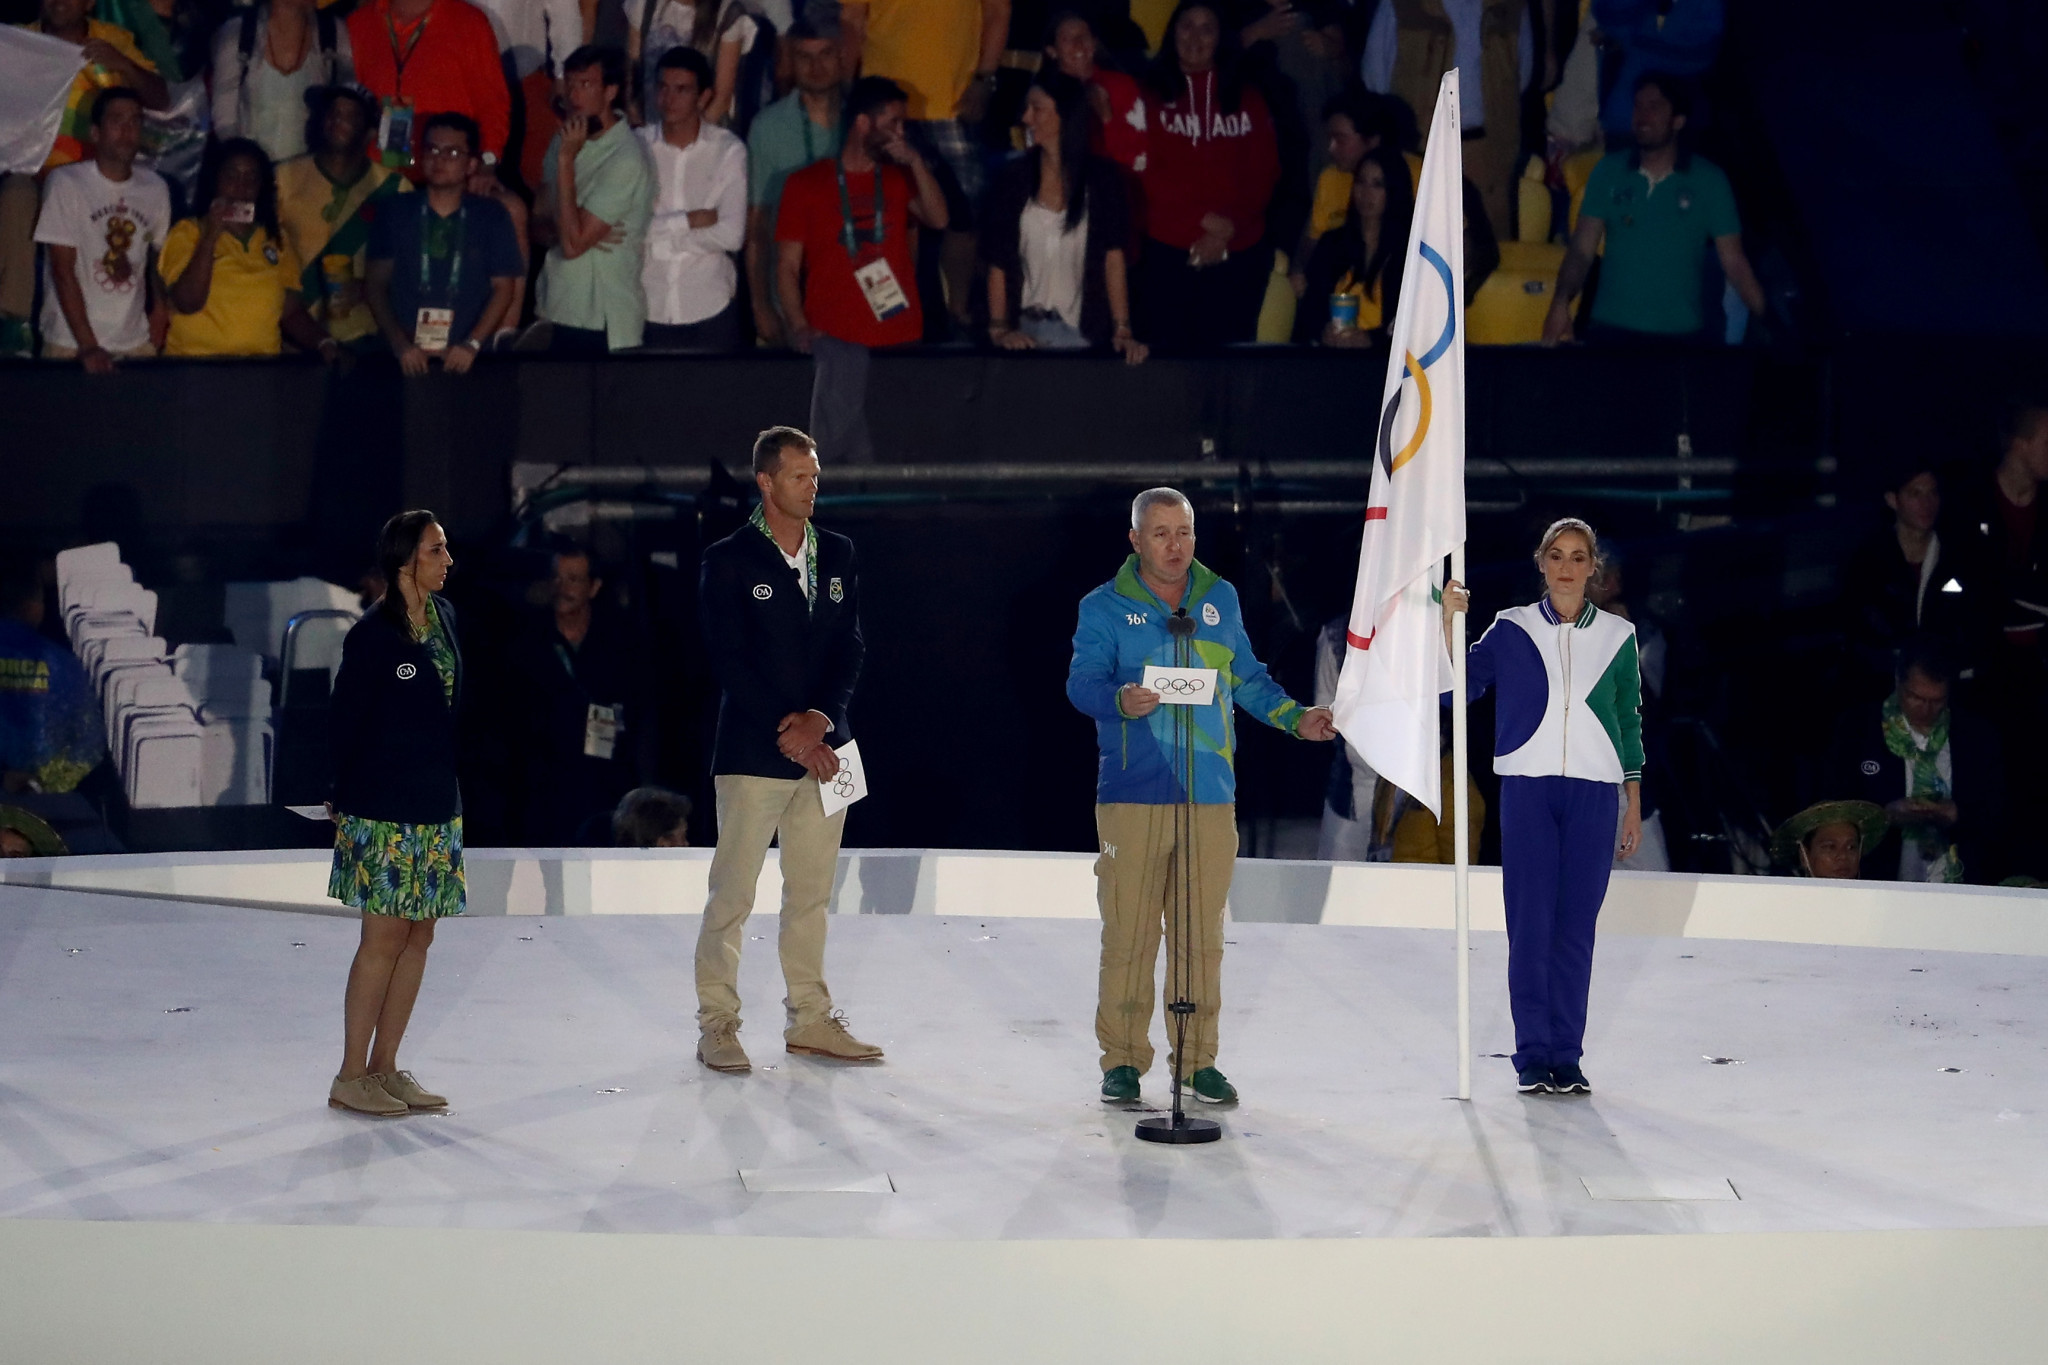 The Olympic Oath is taken at the Rio 2016 Games ©Getty Images